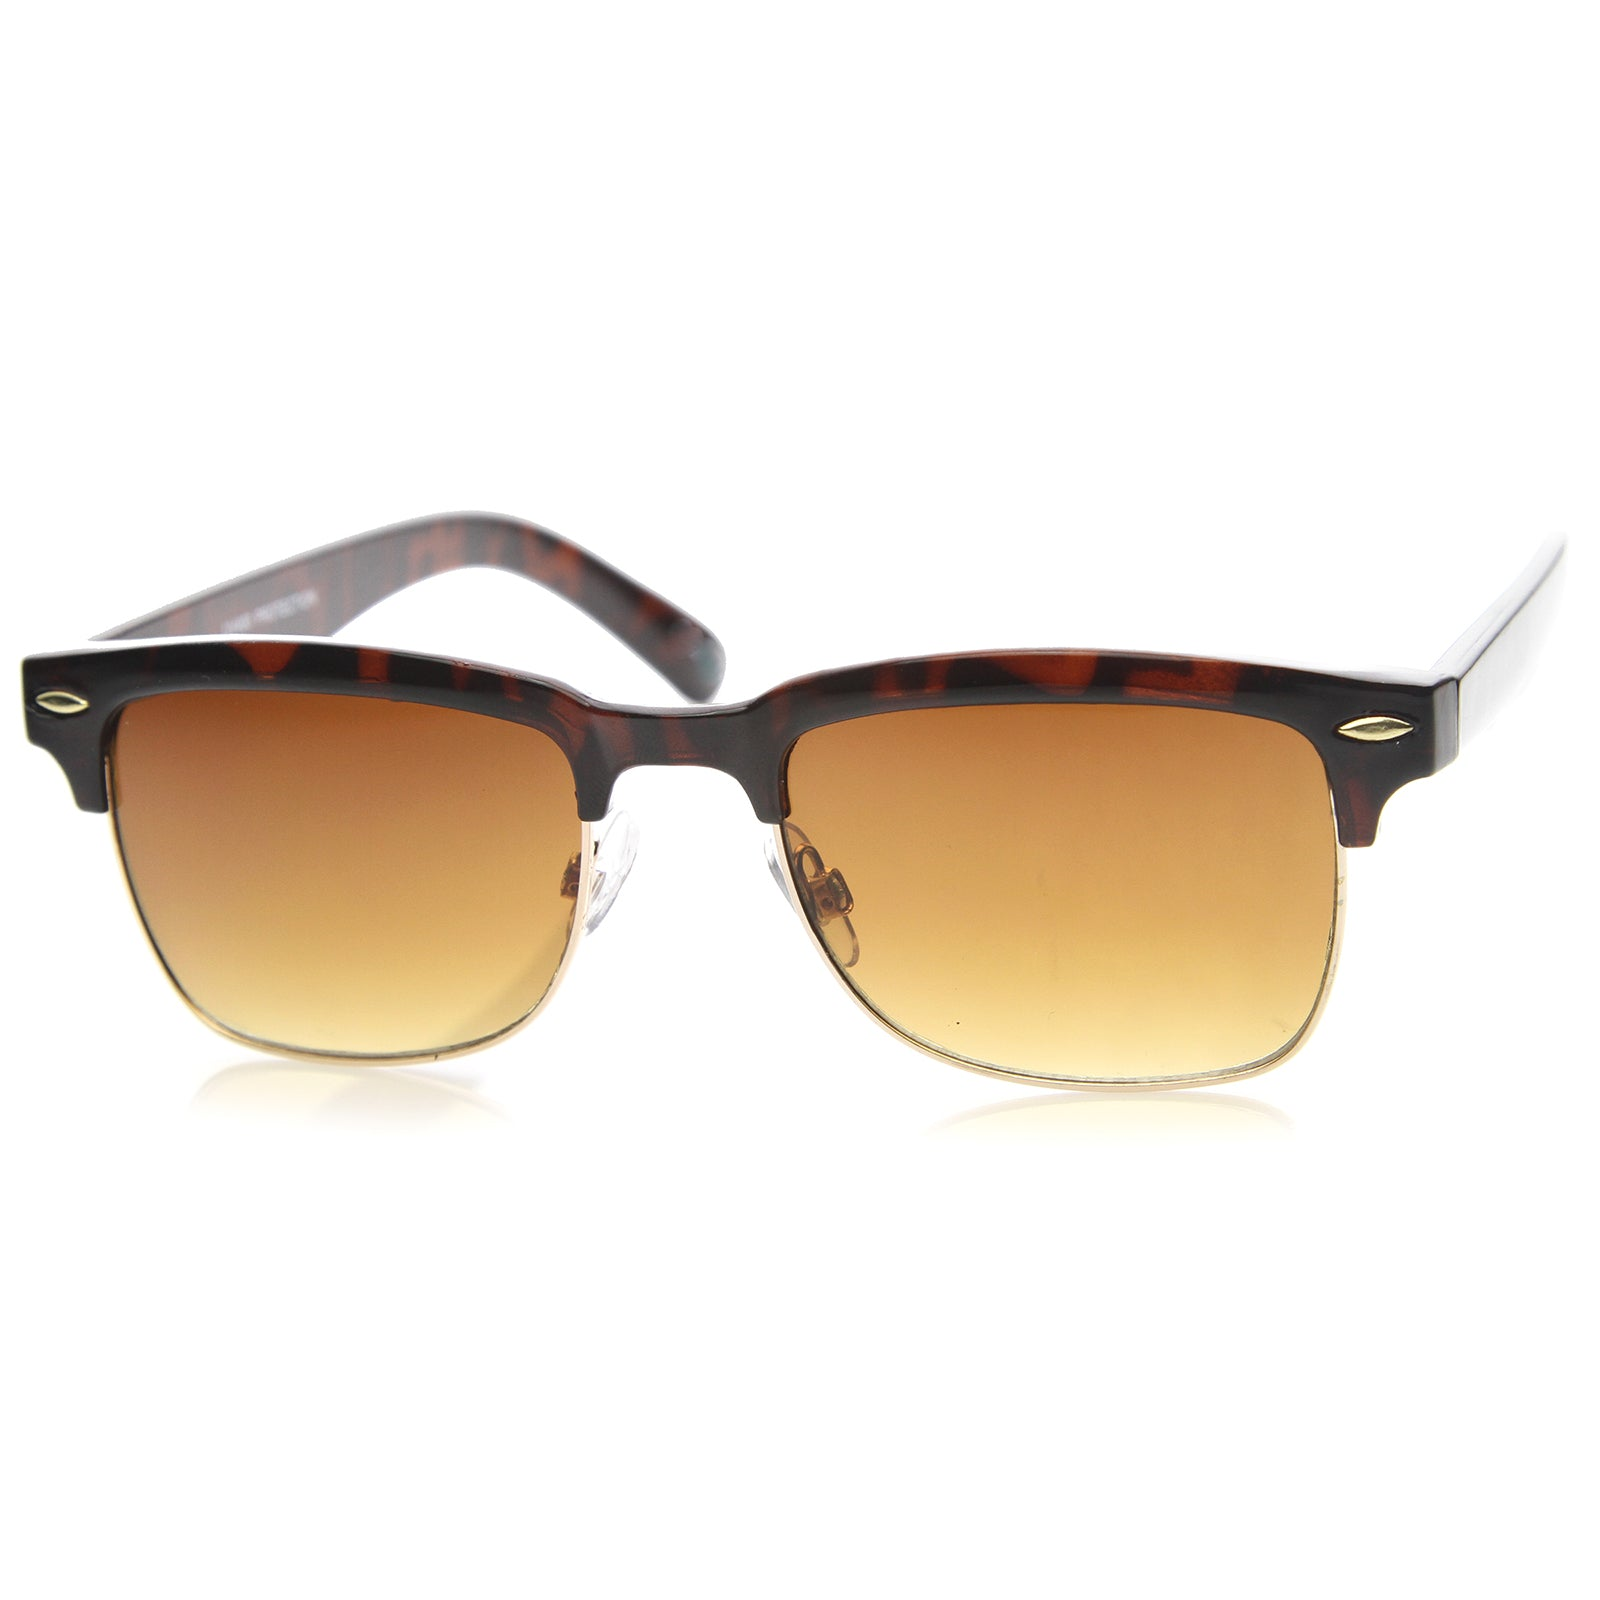 Mens Semi-Rimless Sunglasses With UV400 Protected Composite Lens - sunglass.la - 2